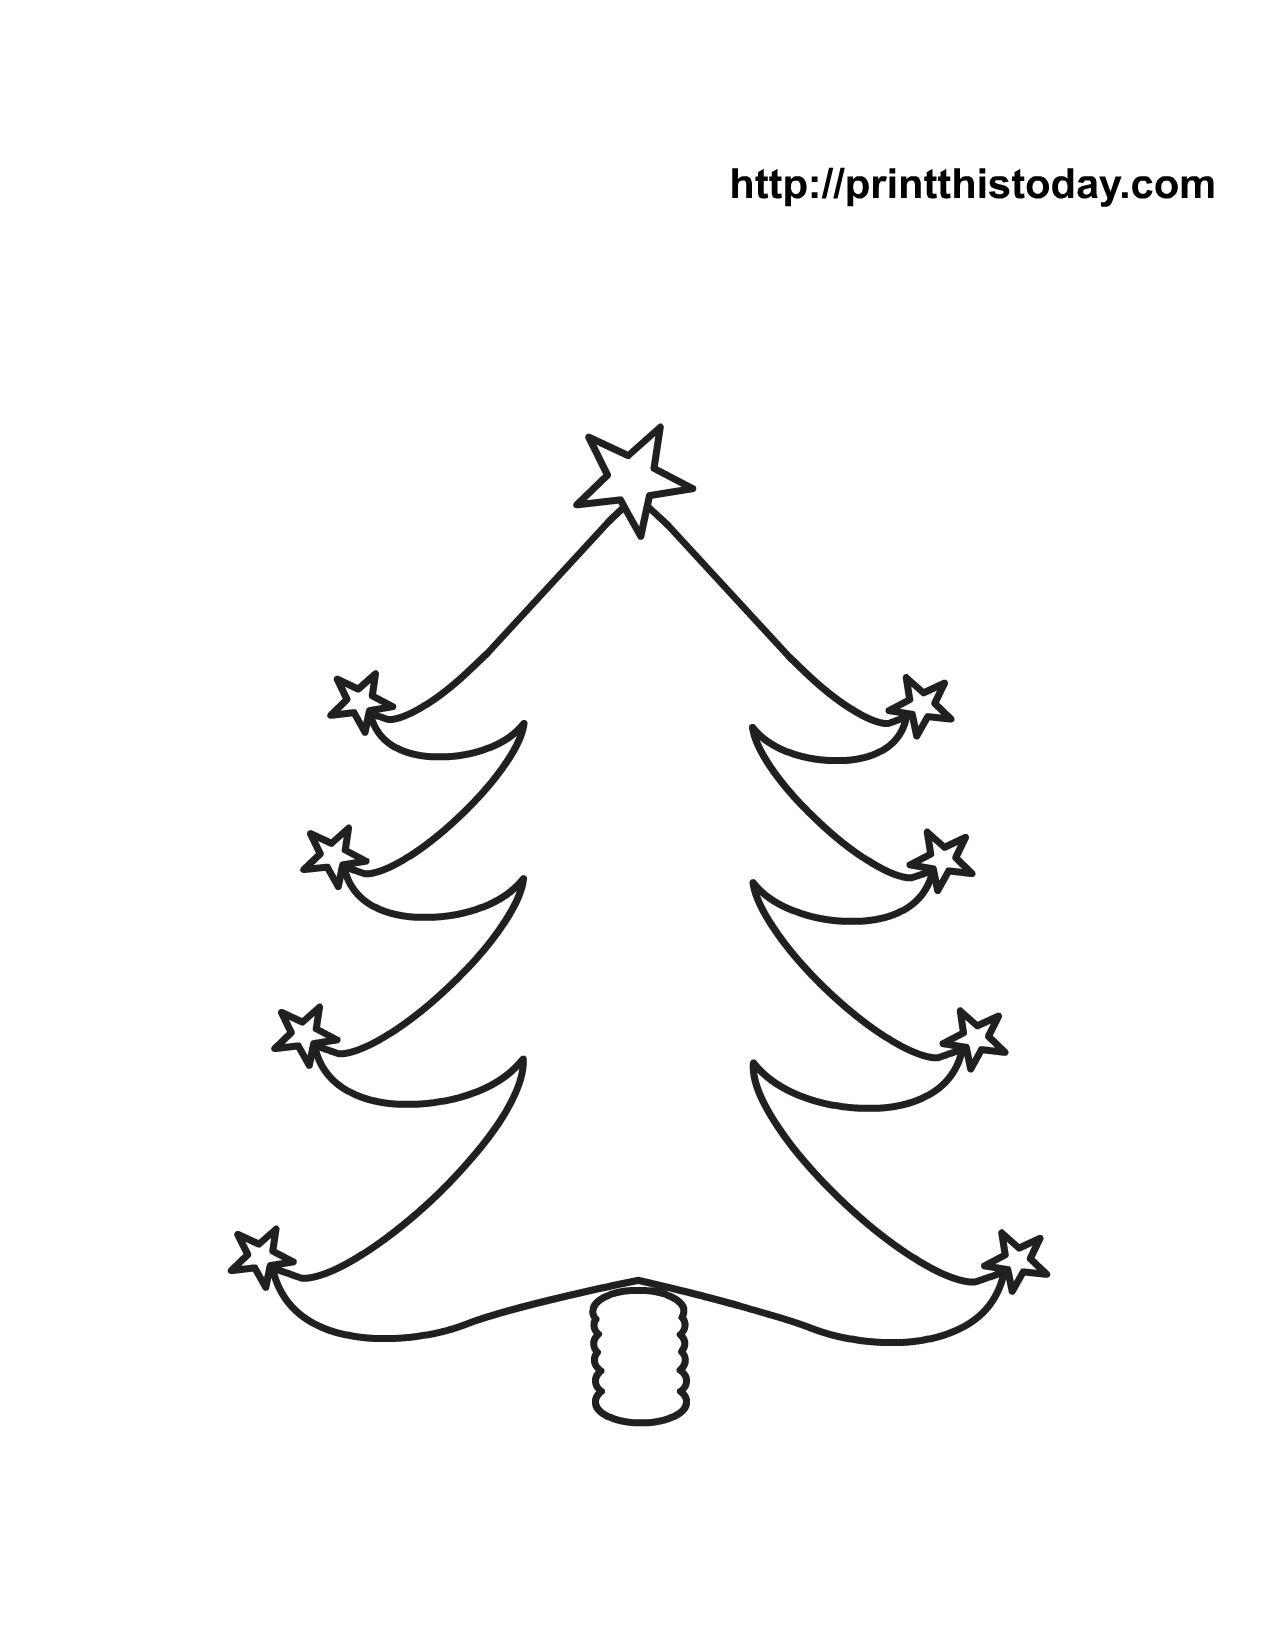 christmas tree with star shaped ornaments coloring page - Free Printable Ornament Coloring Page 2